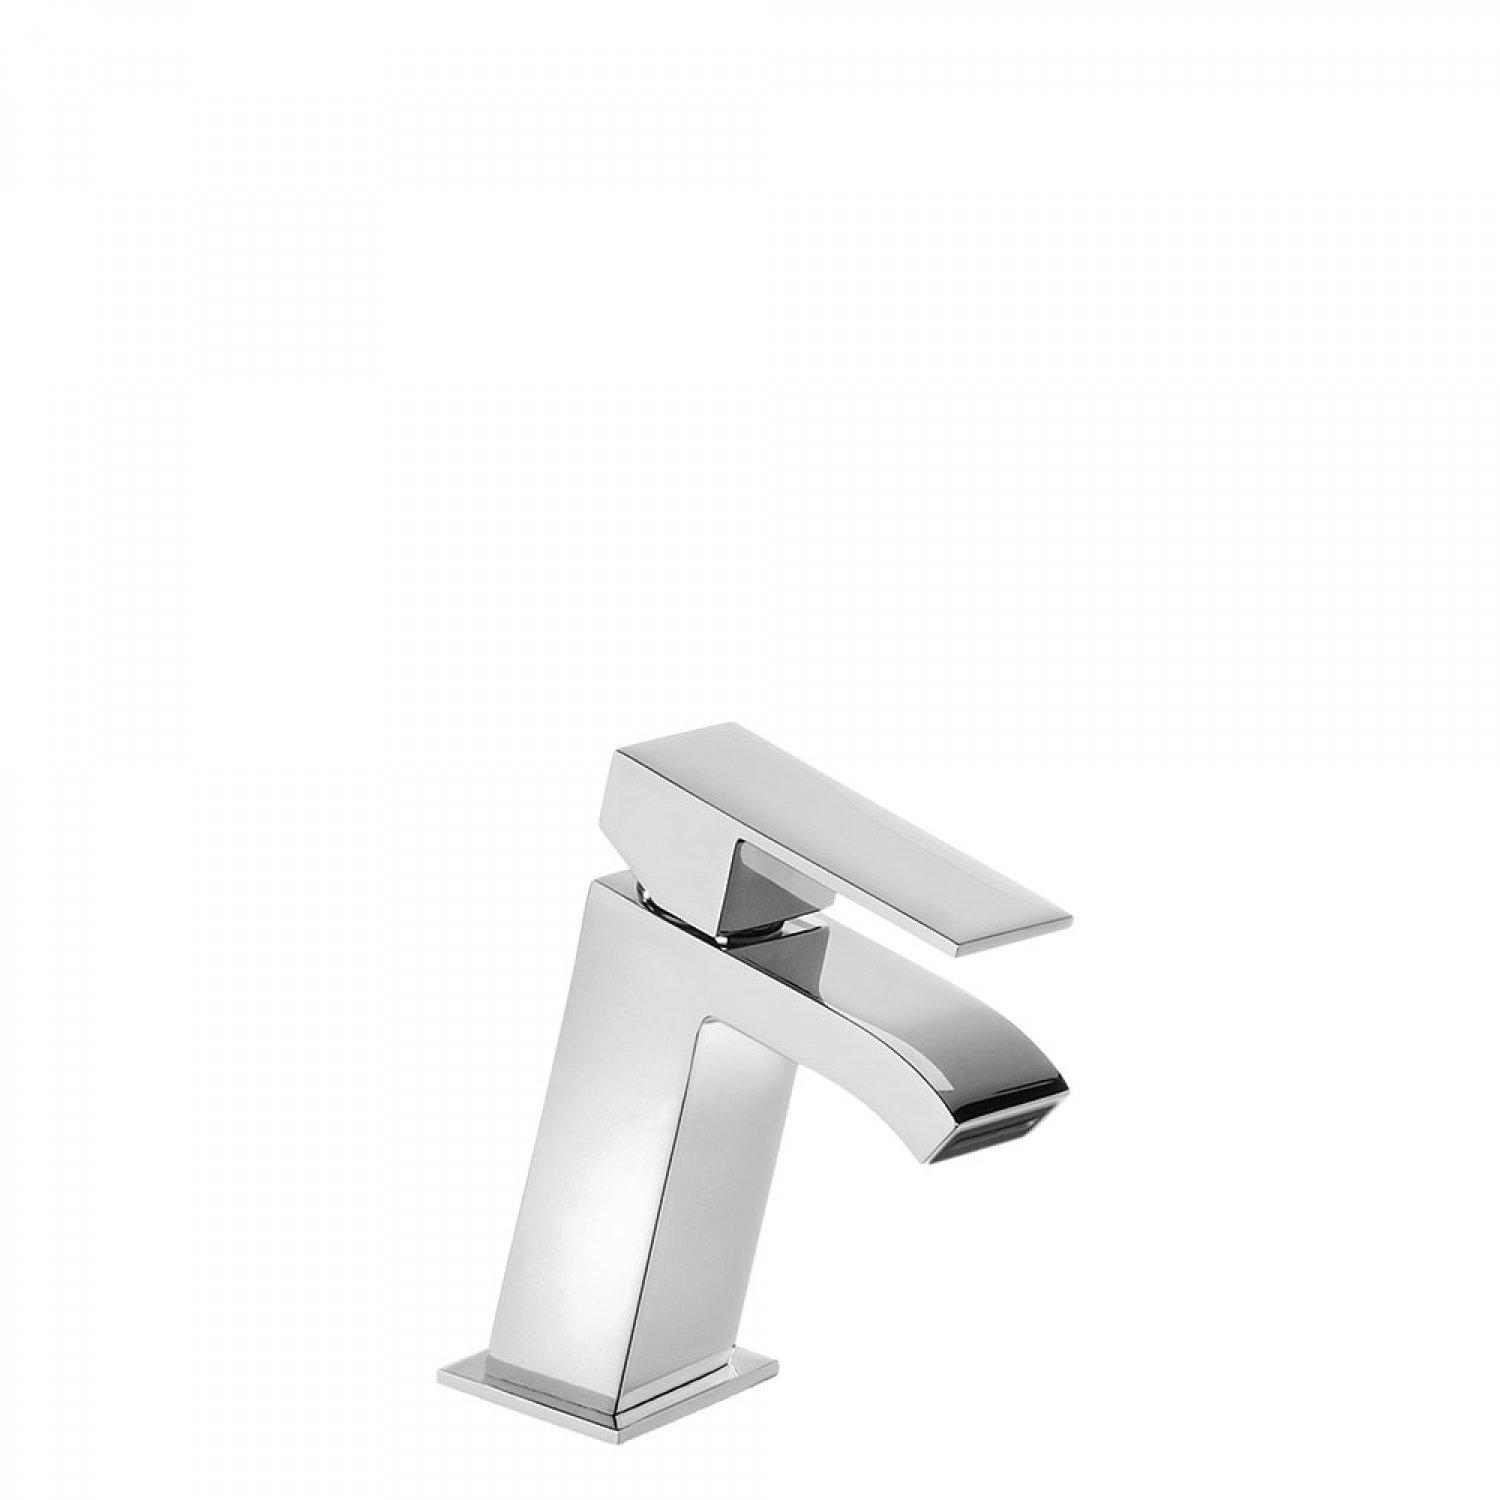 http://desidea.hu/wp-content/uploads/2019/07/Single-lever-washbasin-mixer-00620101.jpg